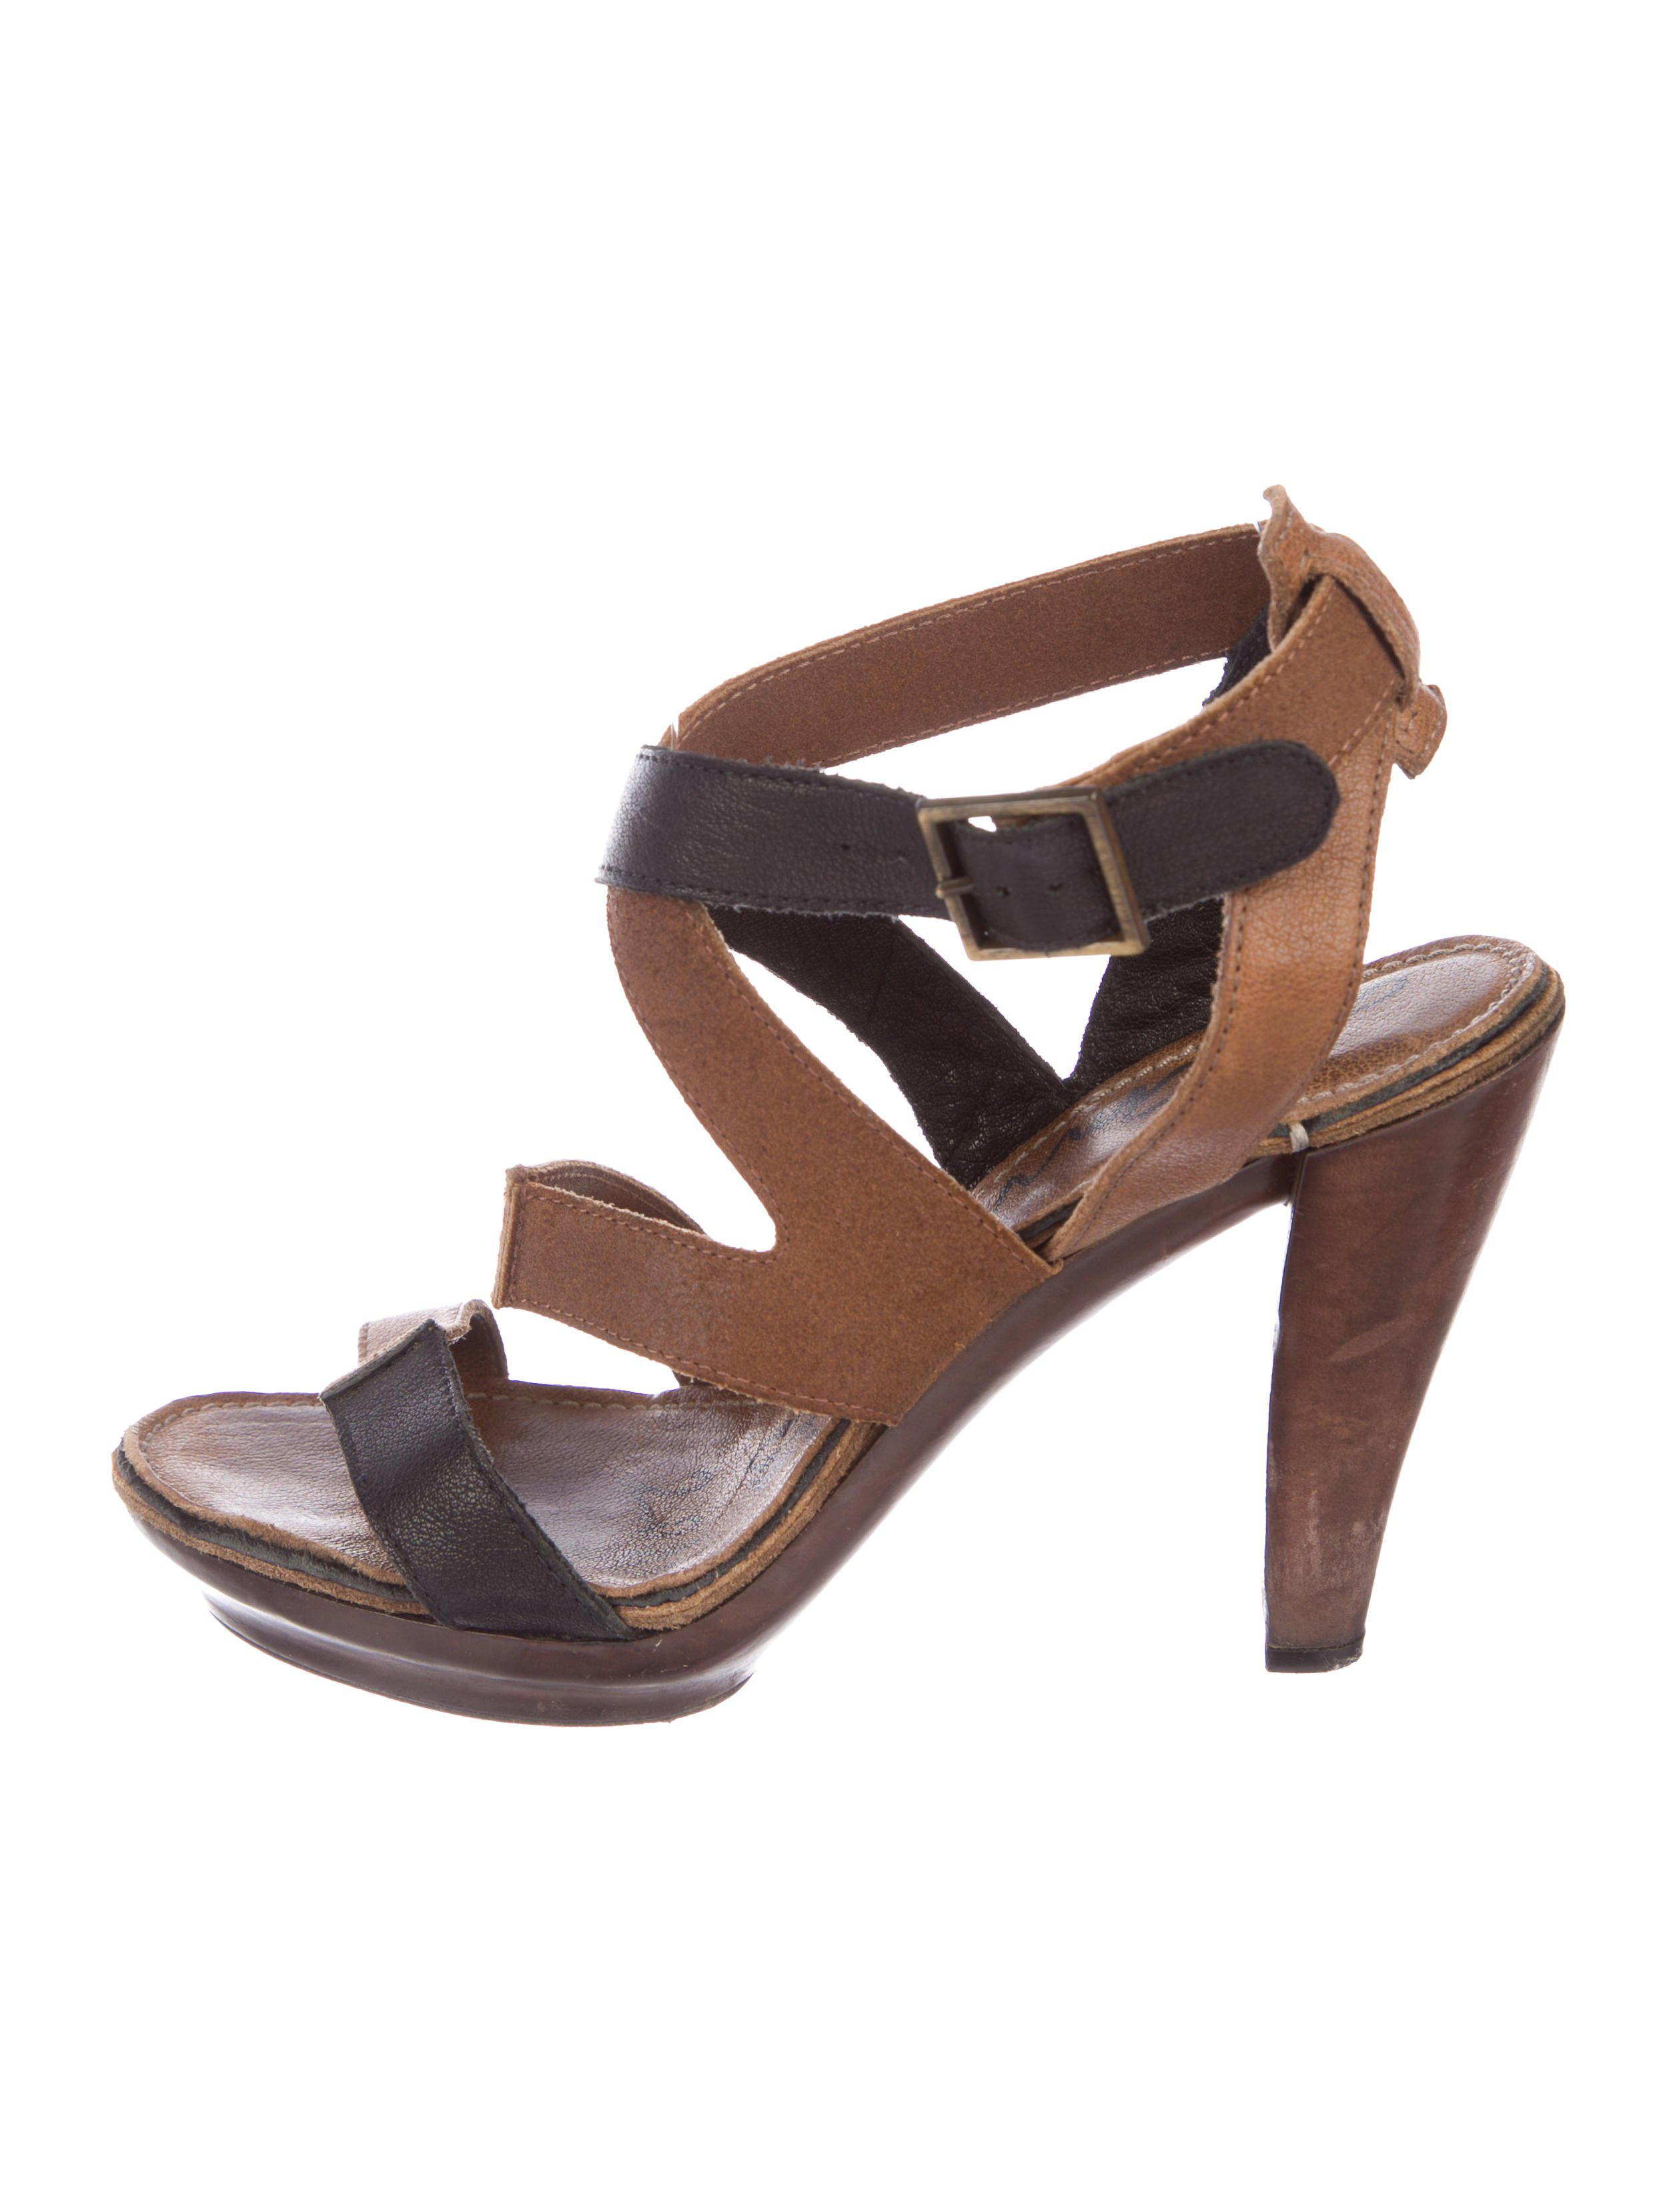 Lanvin Leather Multi-strap Sandals cheap pay with visa cheap sale limited edition in China cheap online free shipping professional K3eVguMw